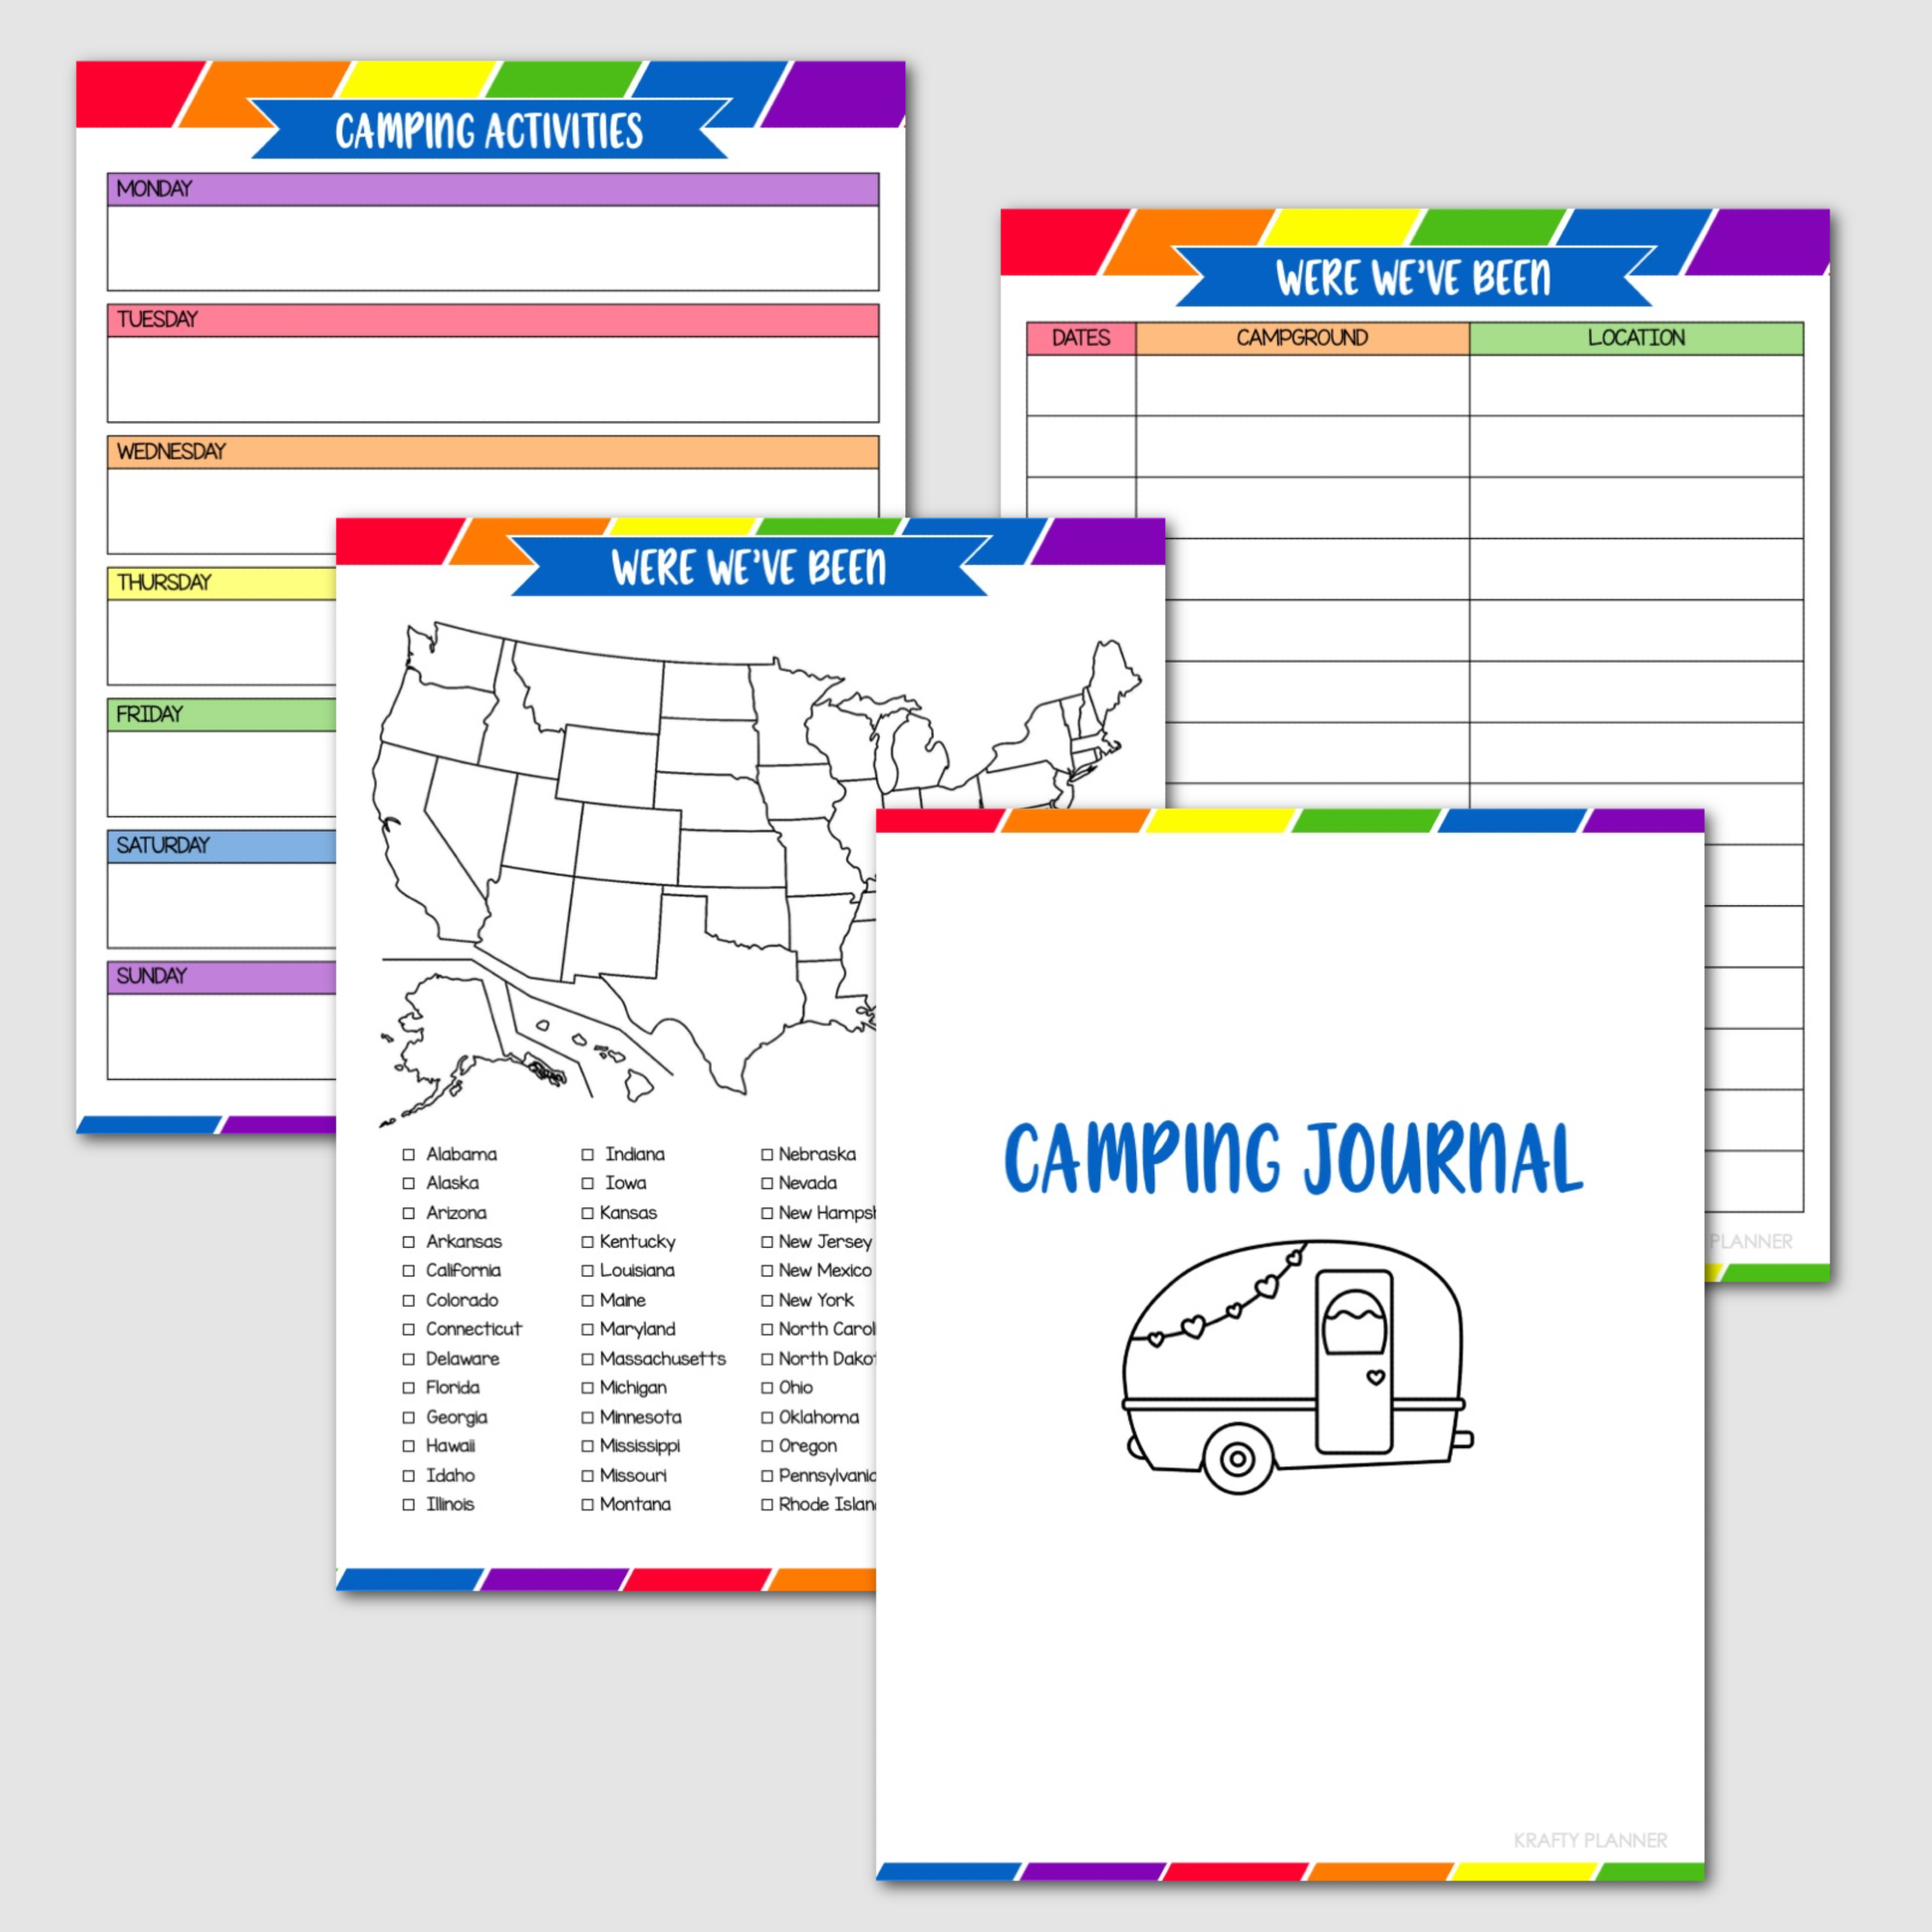 SUMMER FUN BINDER Camping Journal and Where we've been